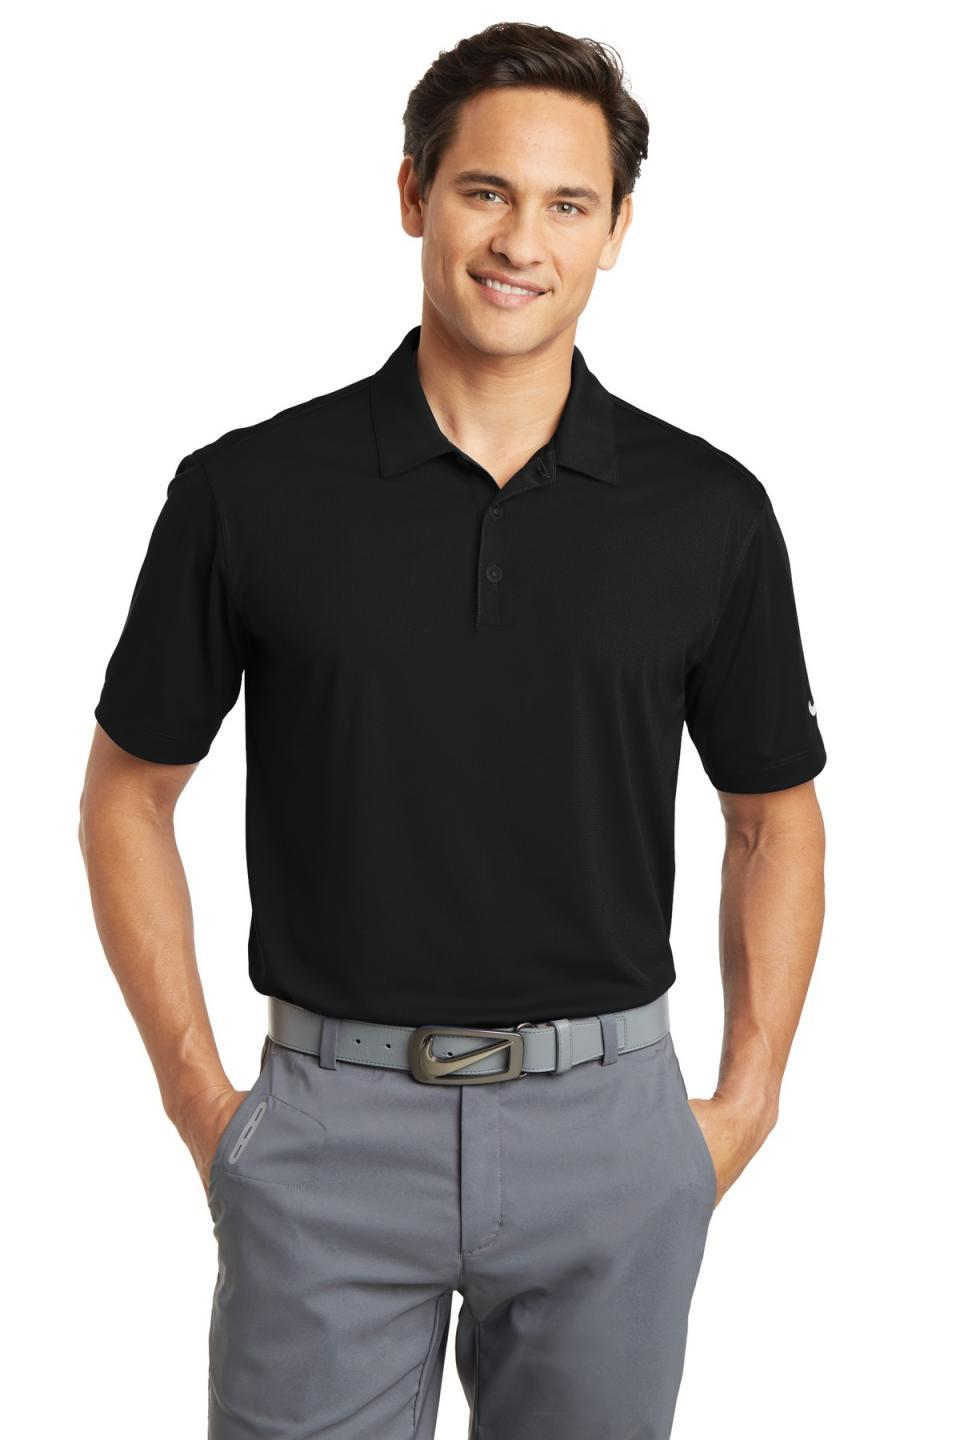 Nike Men's Dri-FIT Vertical Mesh Polo